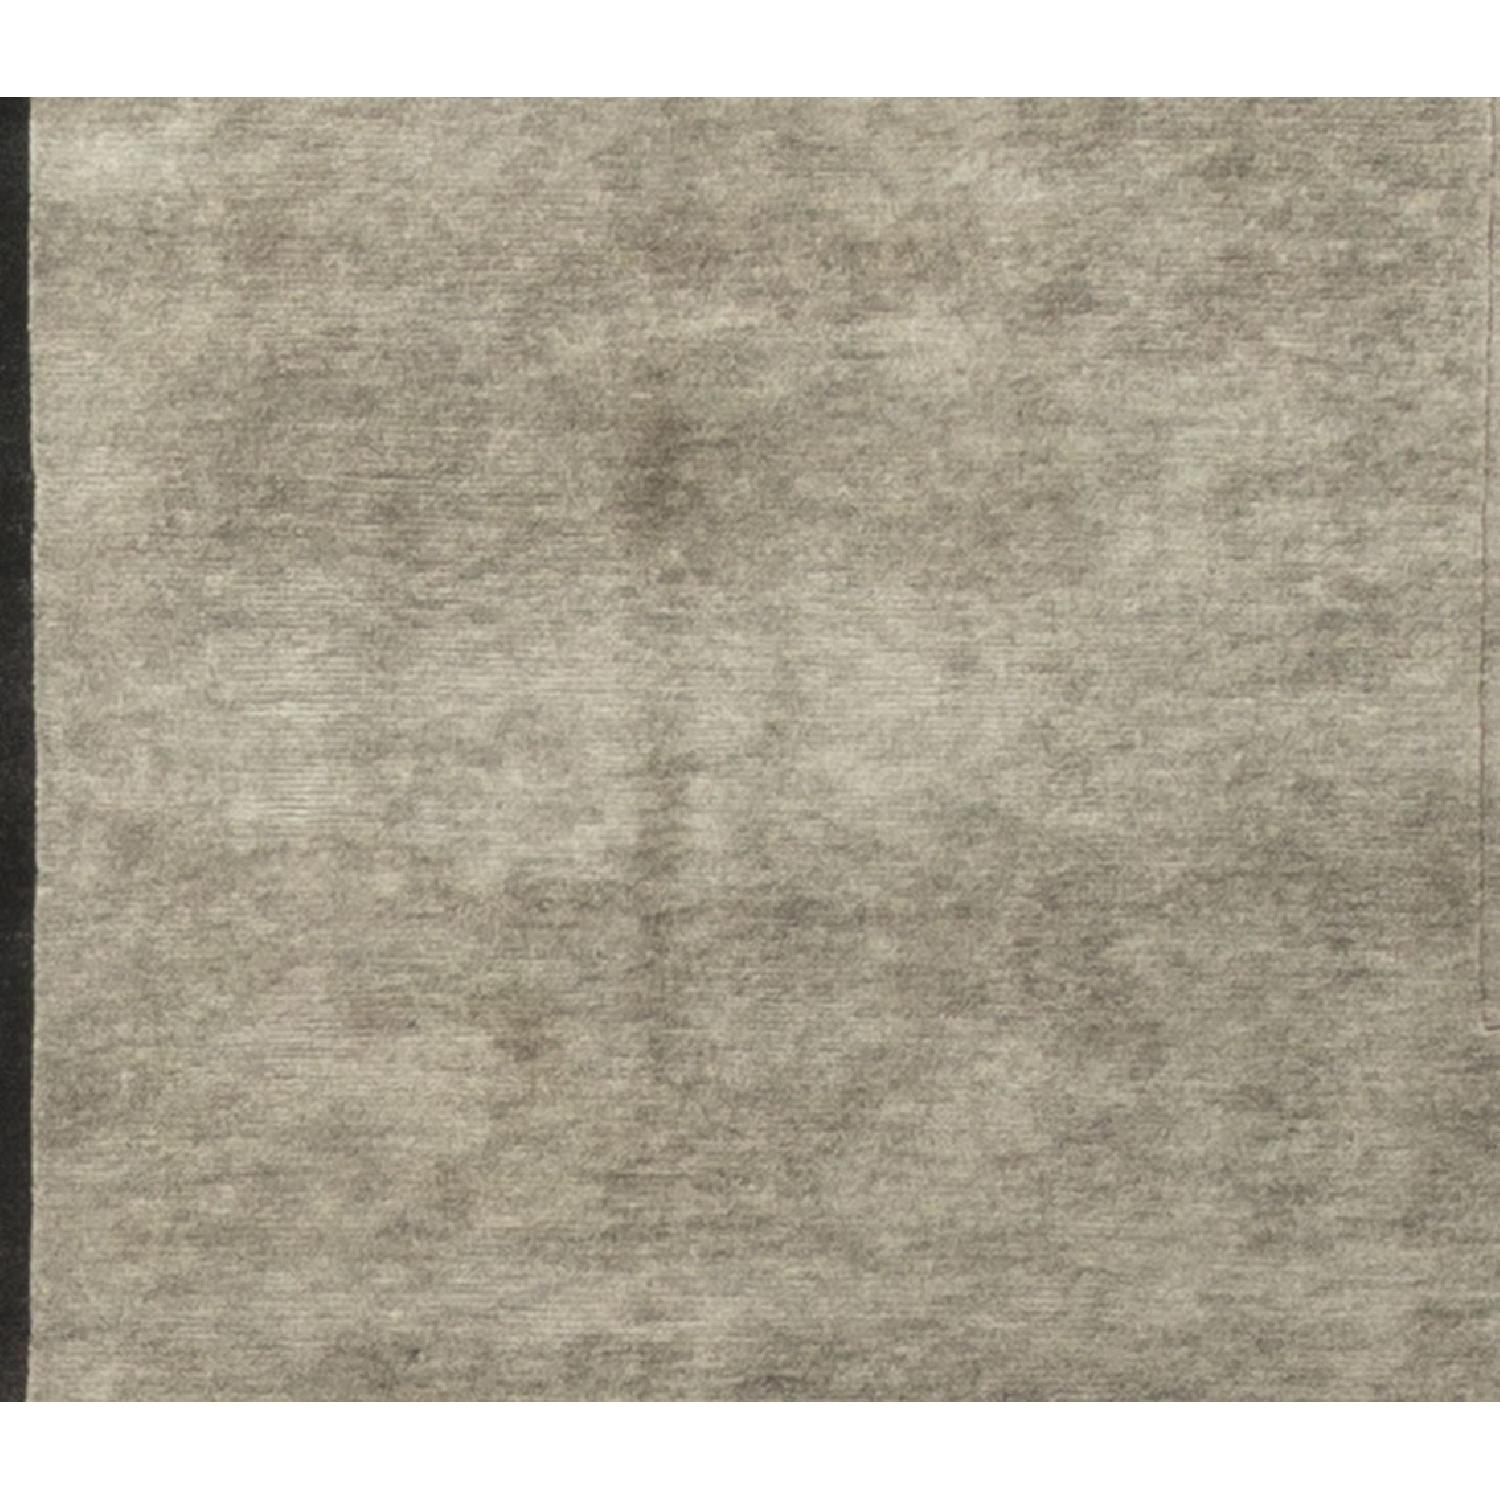 Modern Contemporary Hand Knotted Wool Rug in Black/Grey - image-2